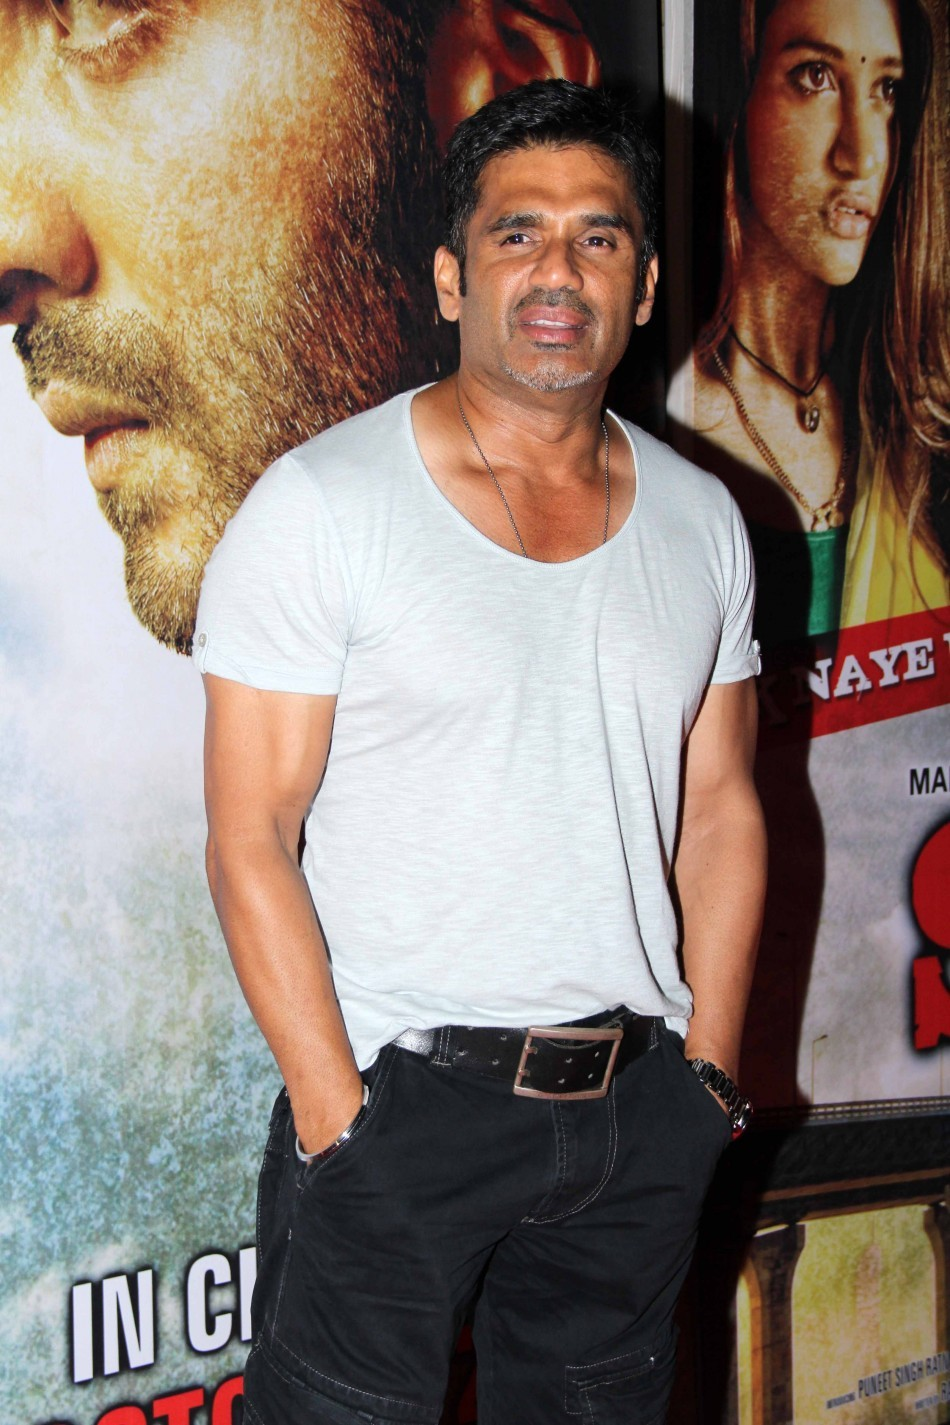 Veteran actor Suneil Shetty at the party